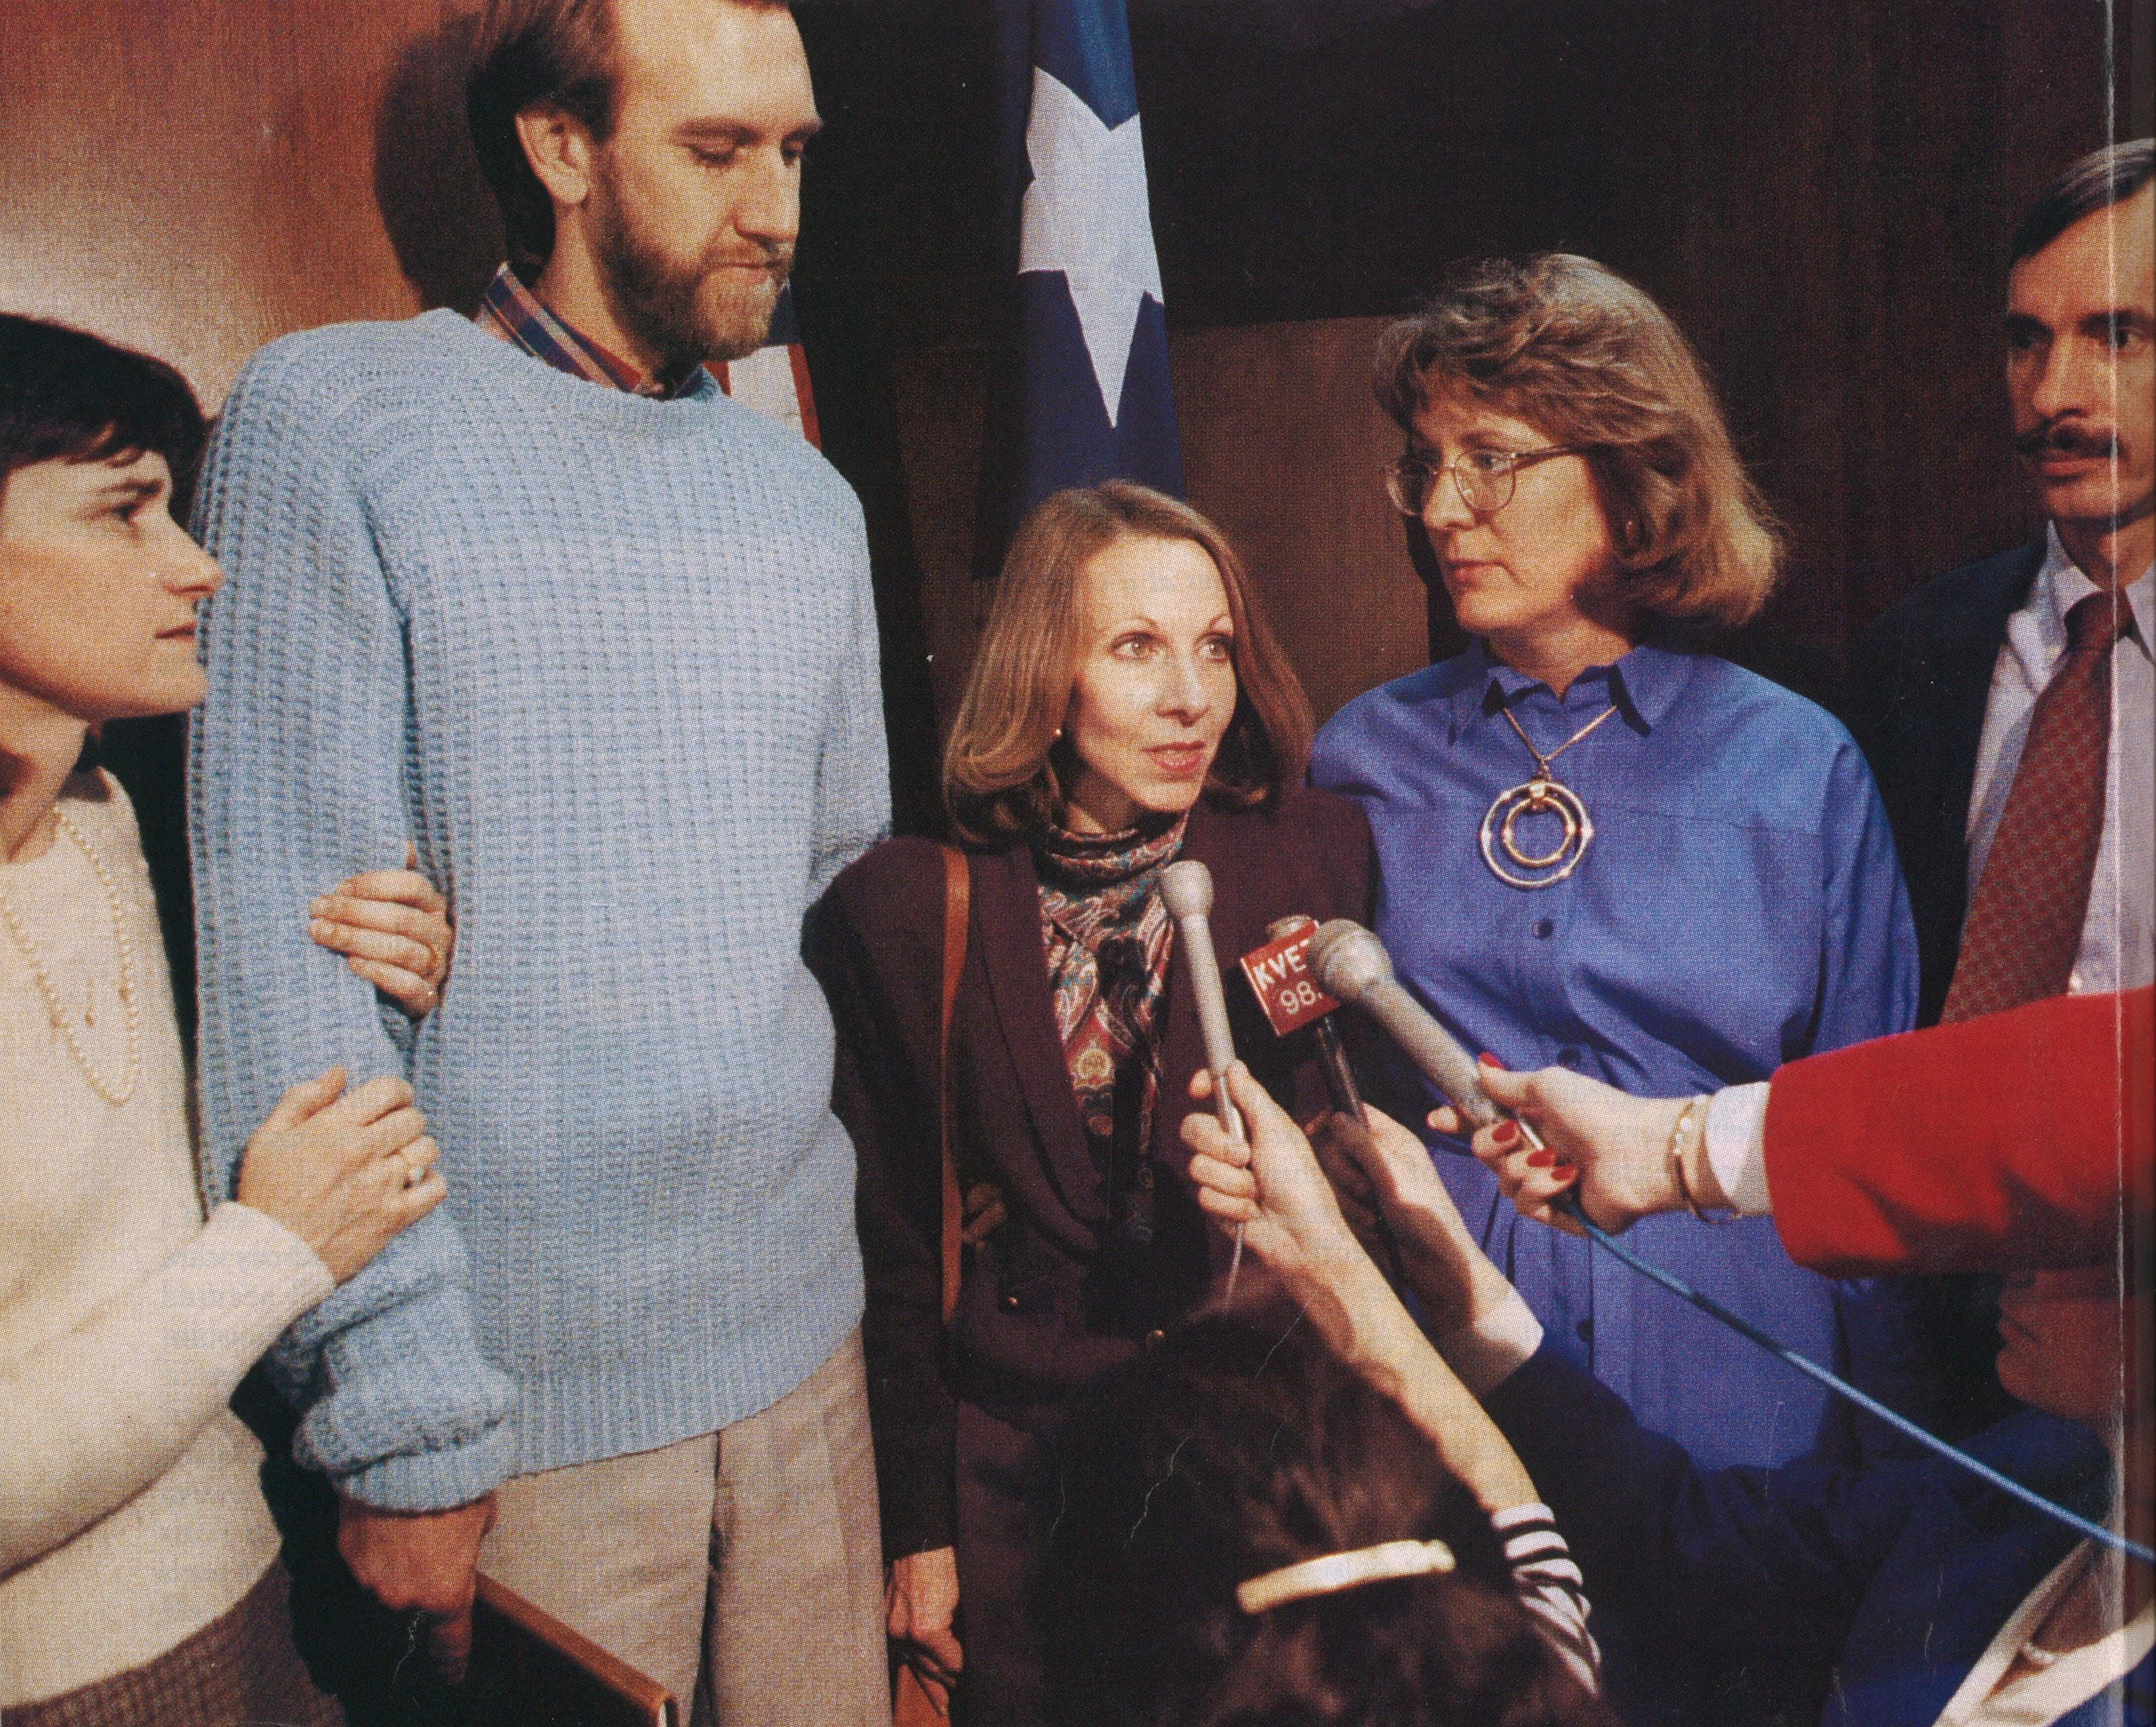 Parents against Satan (left to right): Sandra and Sean Nash, Suzanne Chaviers, and Carol and Earl Staelin speaking to reporters after the trial.